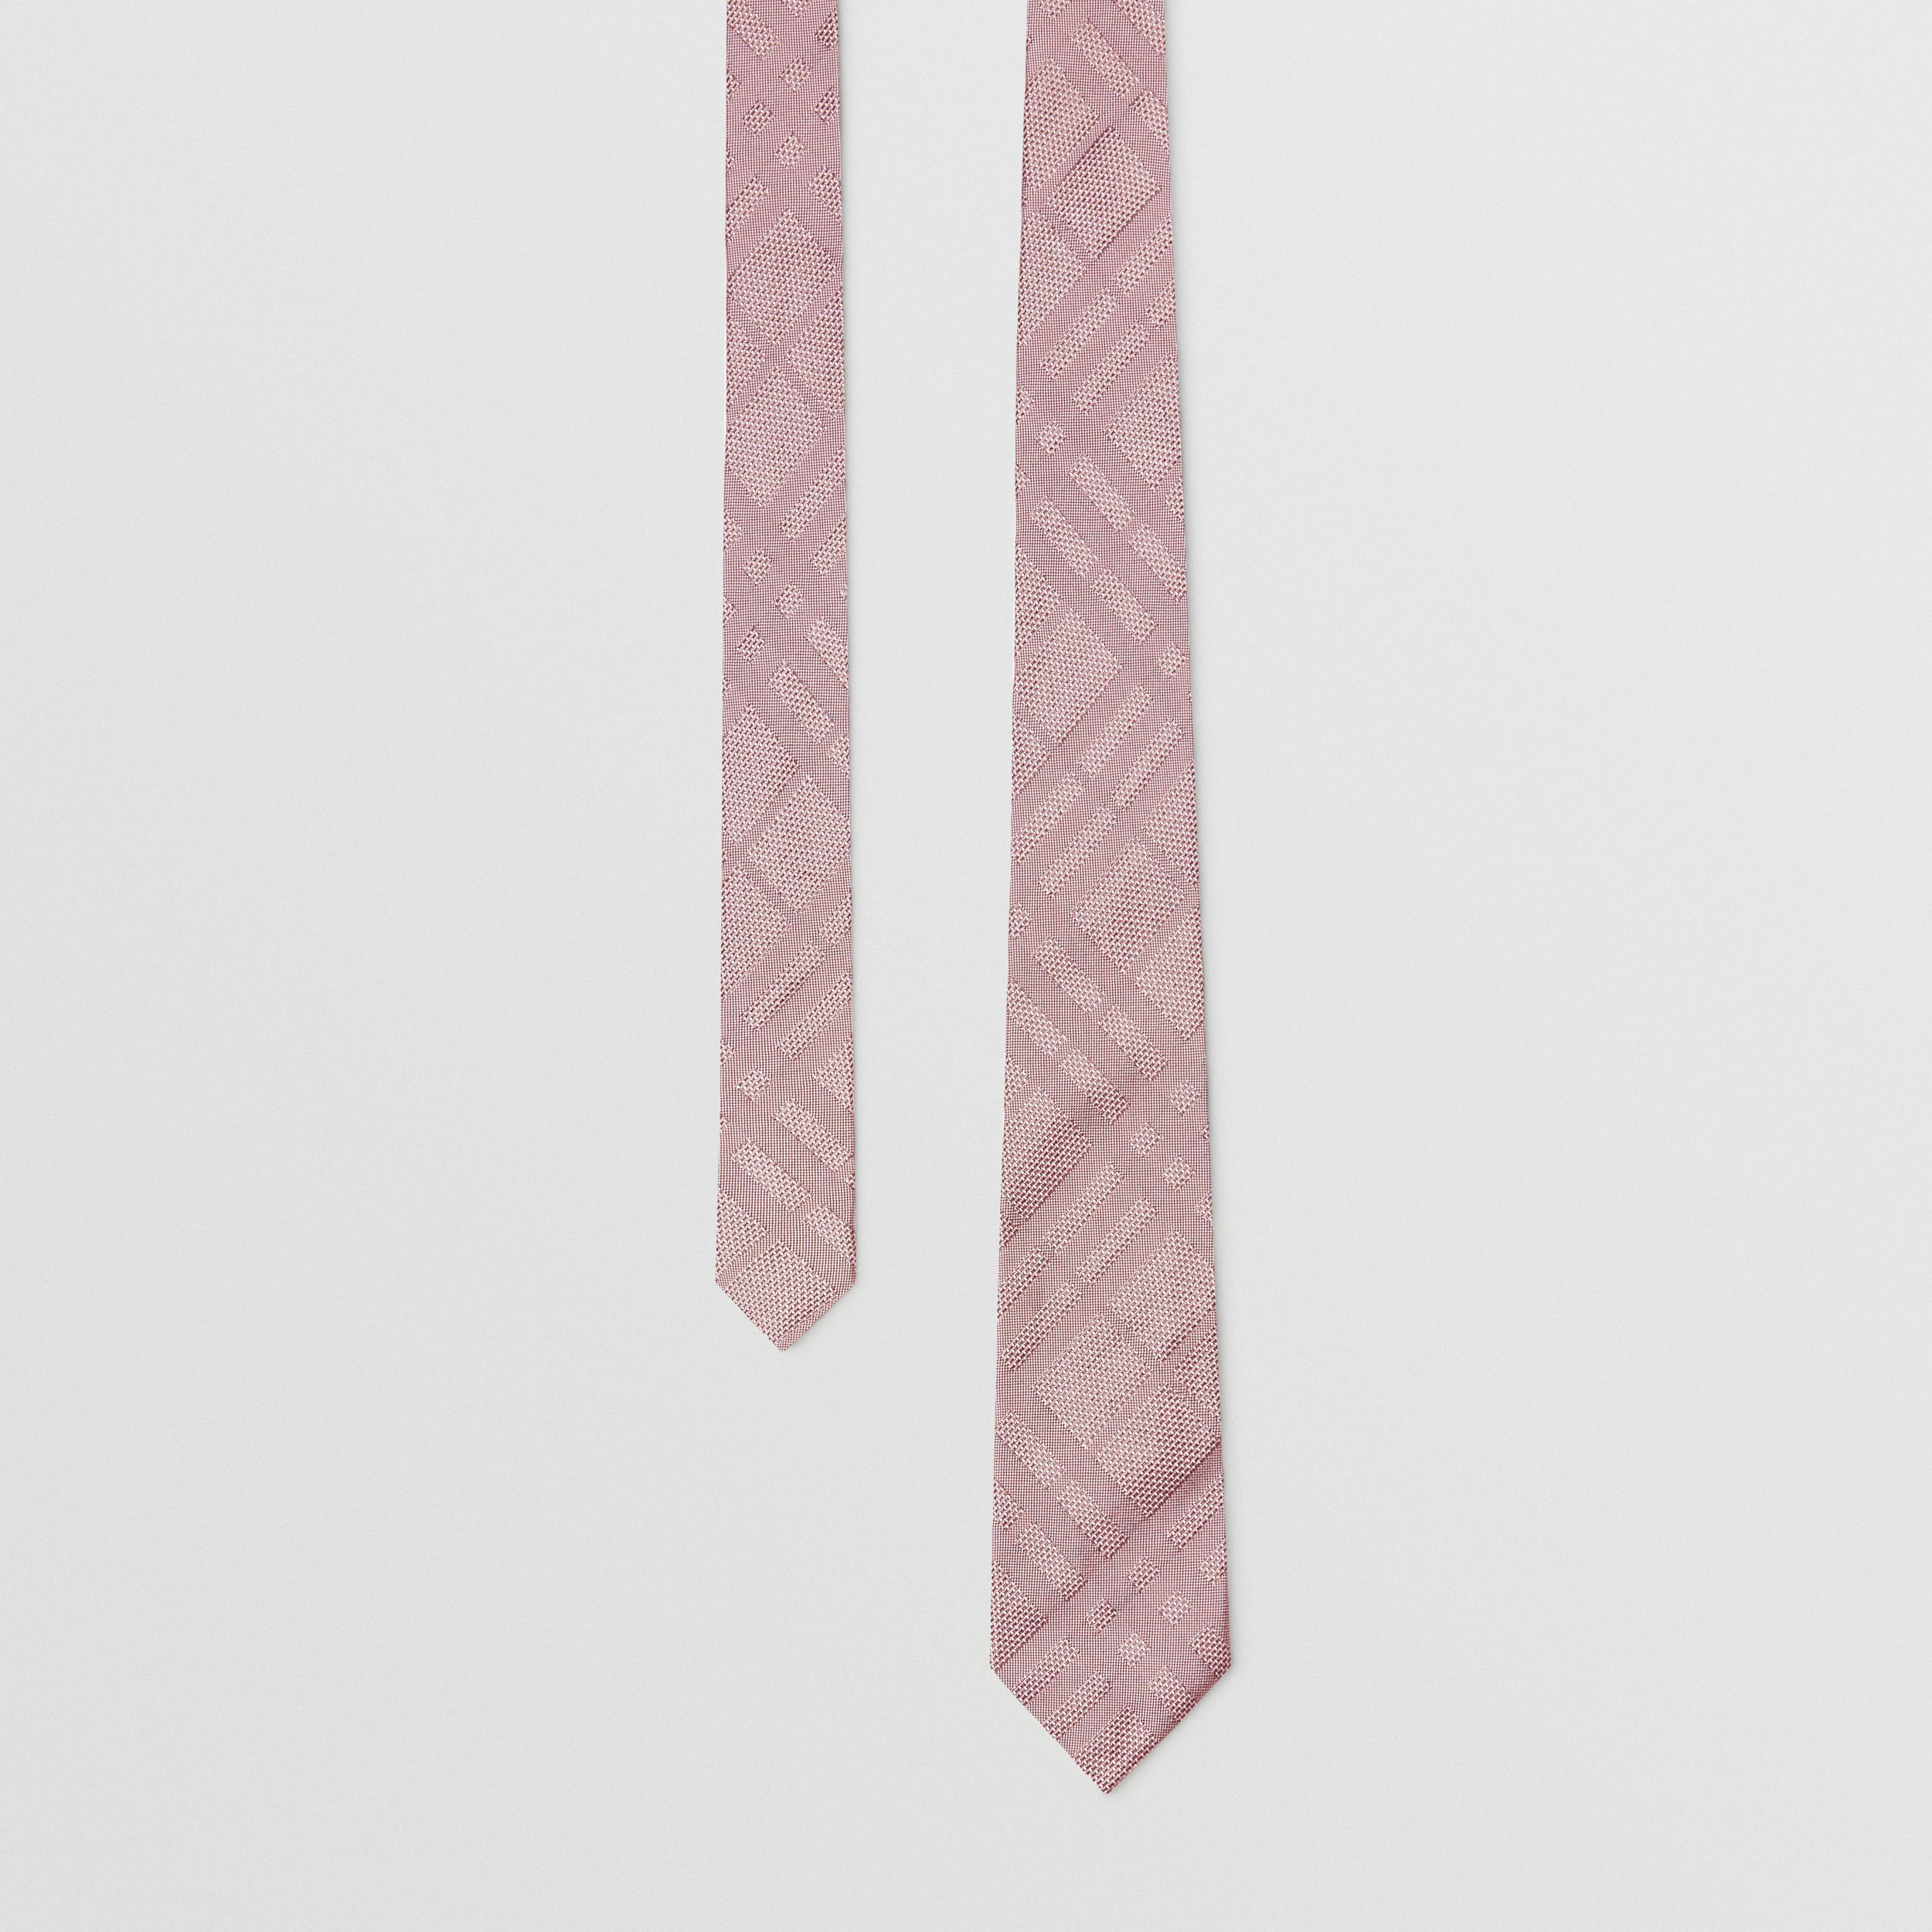 Modern Cut Check Silk Jacquard Tie in Alabaster Pink - Men | Burberry - 1